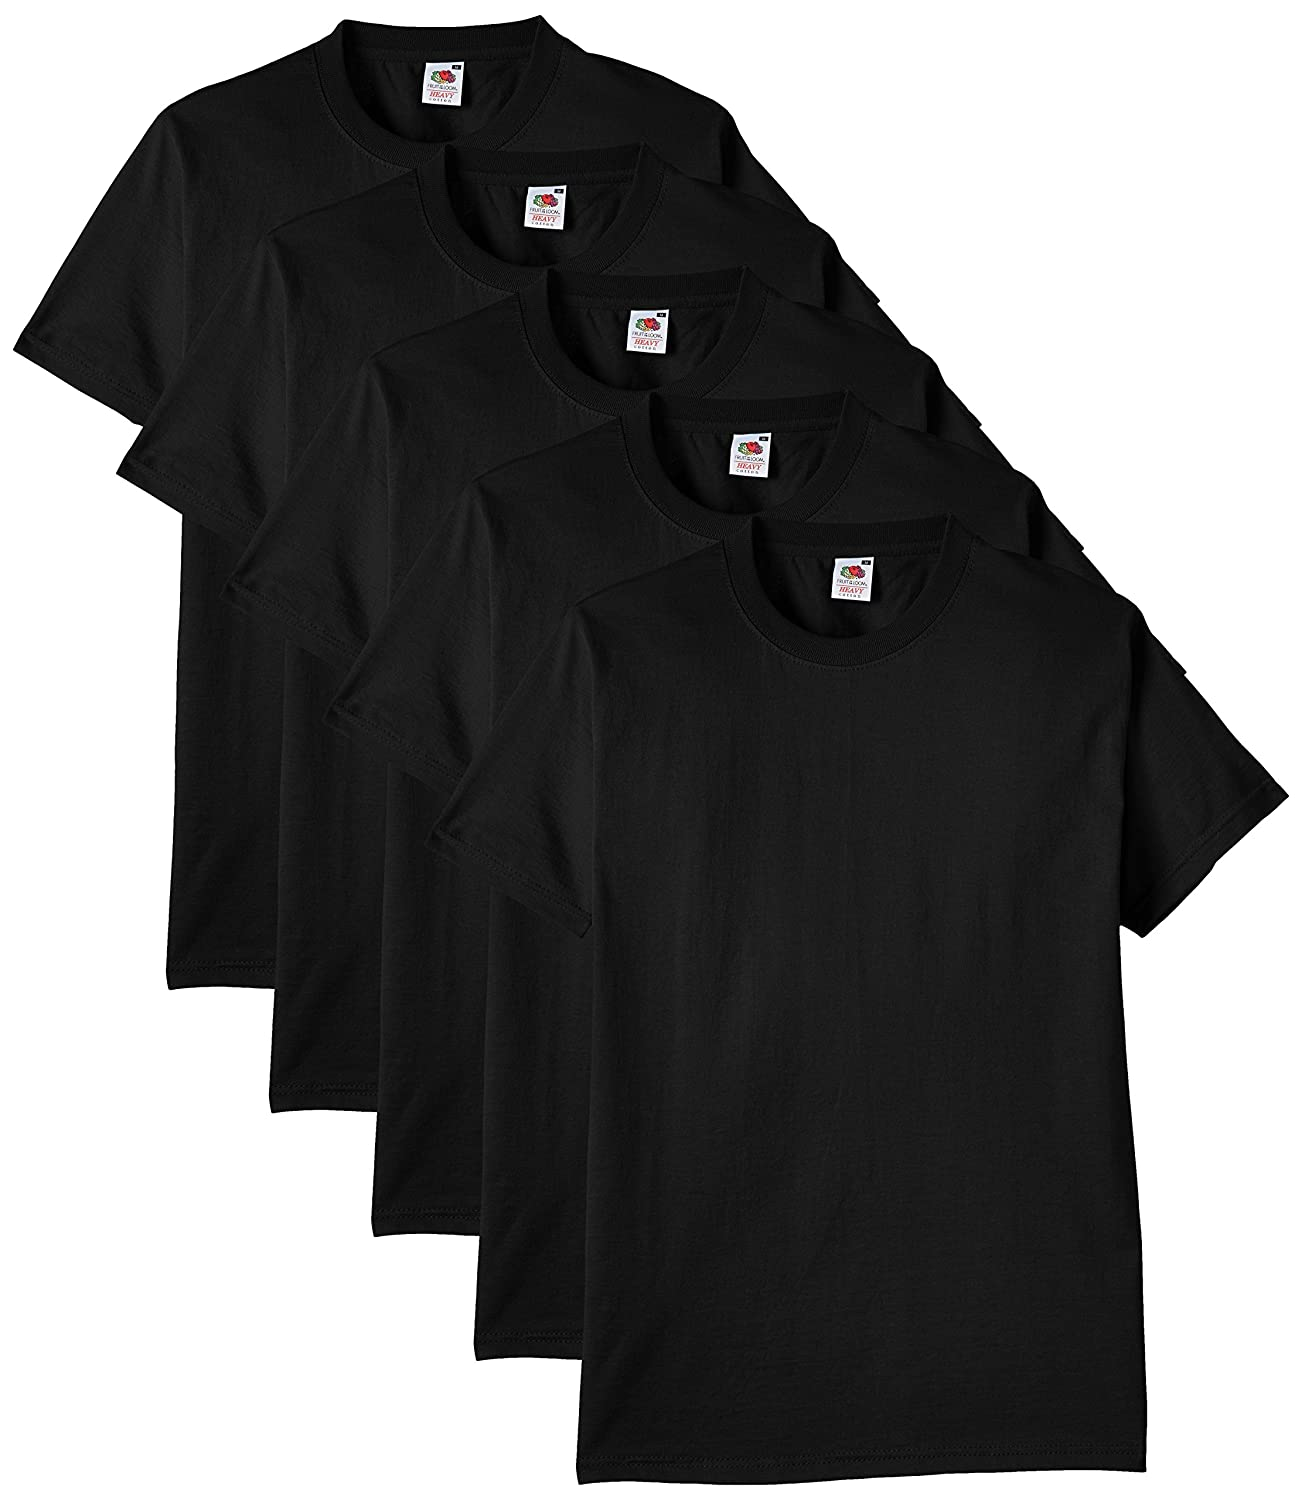 Black t shirt with white collar - Fruit Of The Loom Men S Heavy Cotton 5 Pack Regular Fit Round Collar Short Sleeve T Shirt Amazon Co Uk Clothing